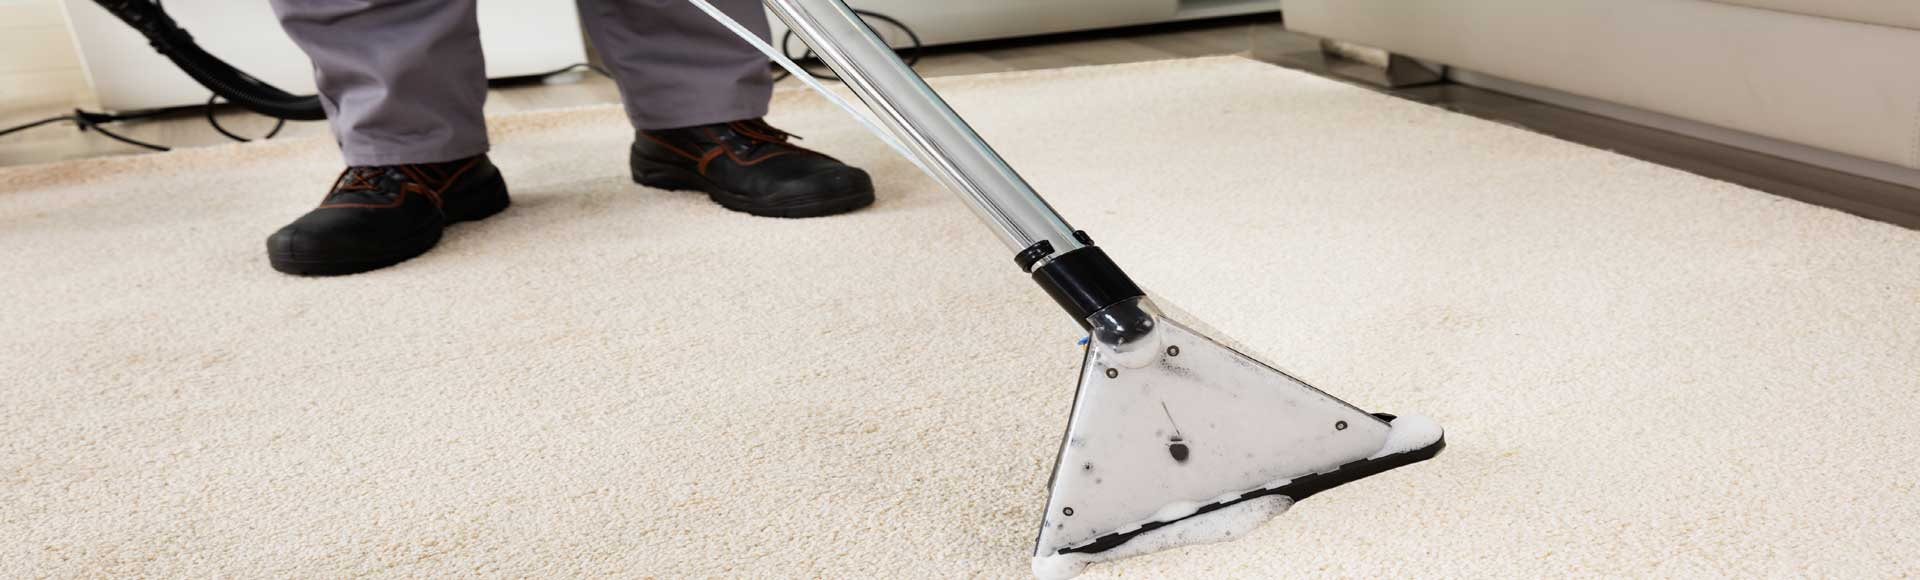 Carpet Cleaning Homes 2 Services